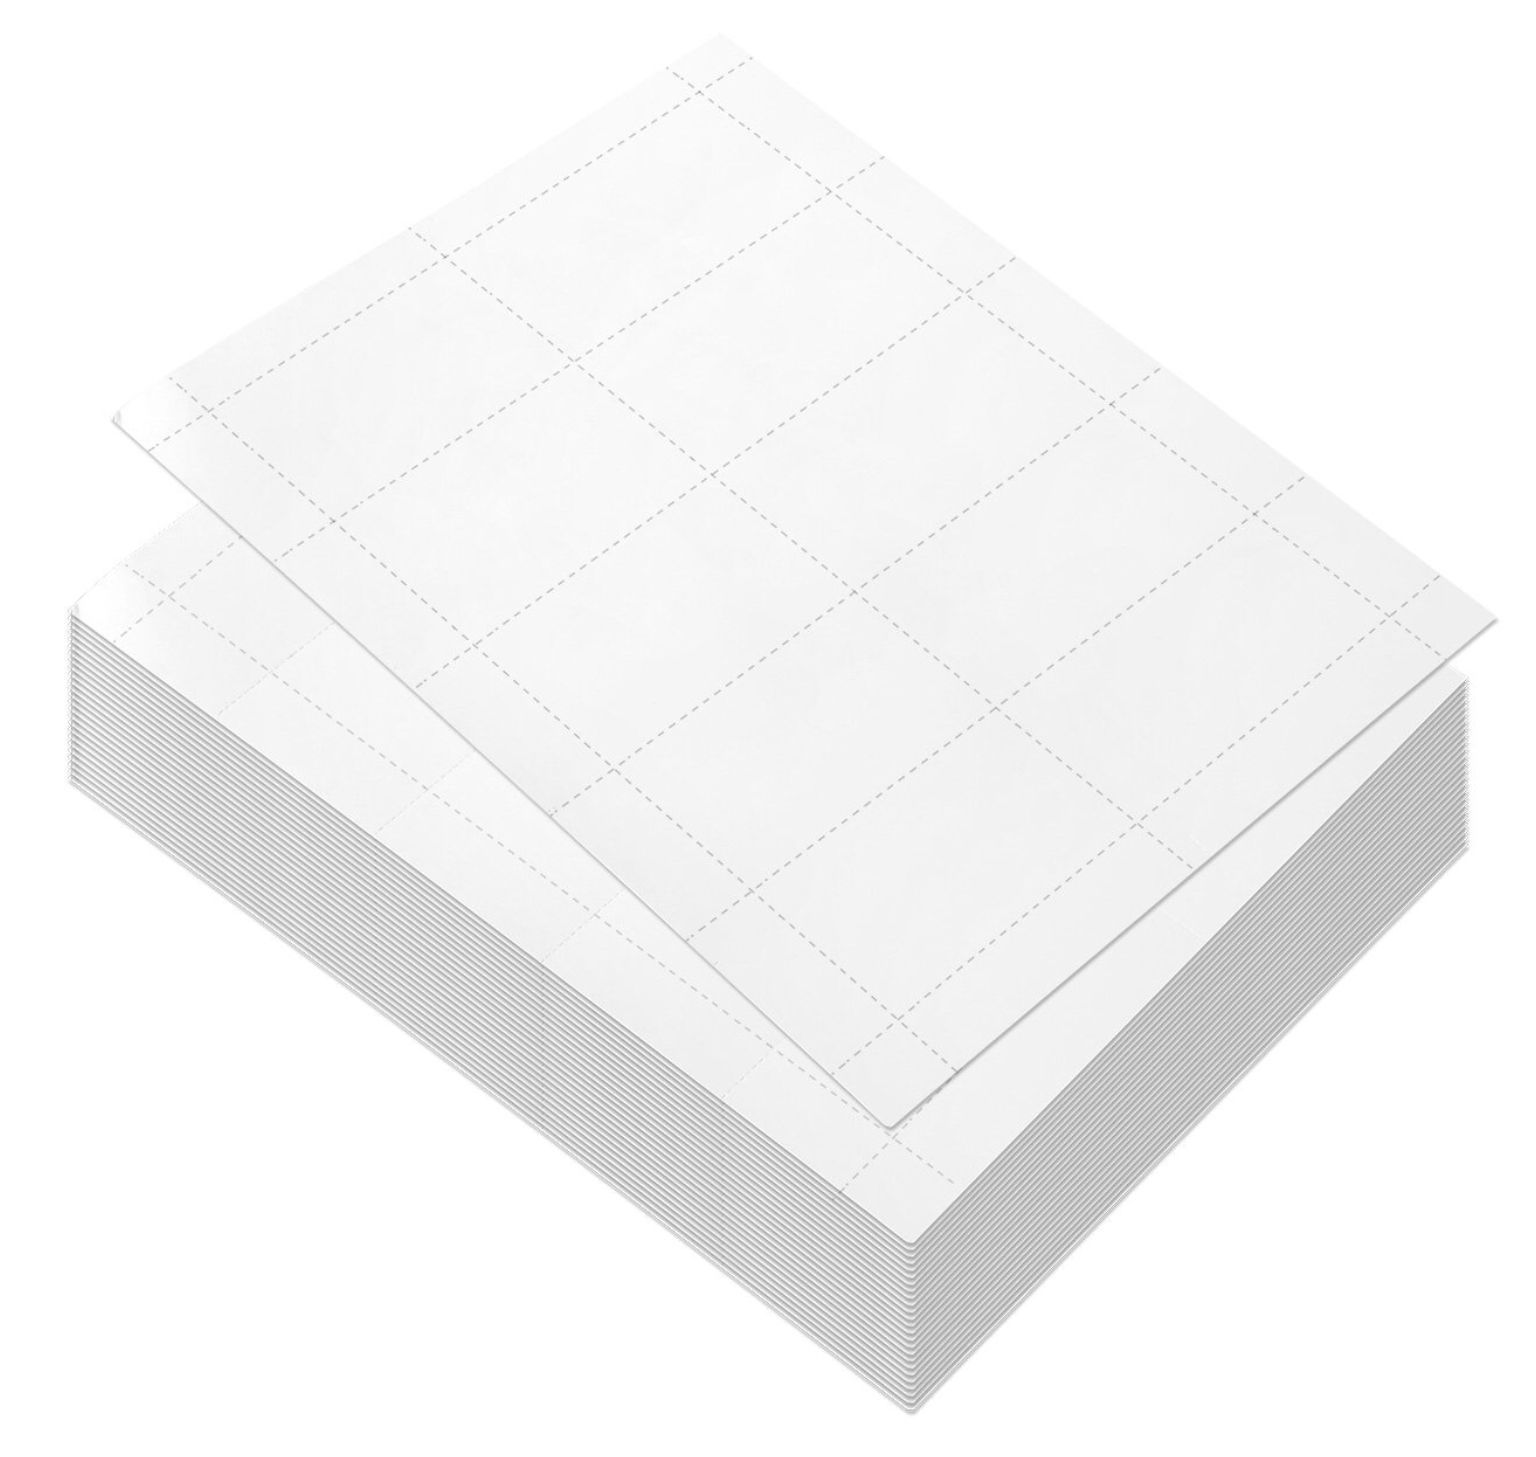 100 Sheets Blank Business Card Paper 1000 Business Card Stock For Inkjet And Laser Printers 170gsm Whit Business Card Stock Blank Business Cards Card Stock